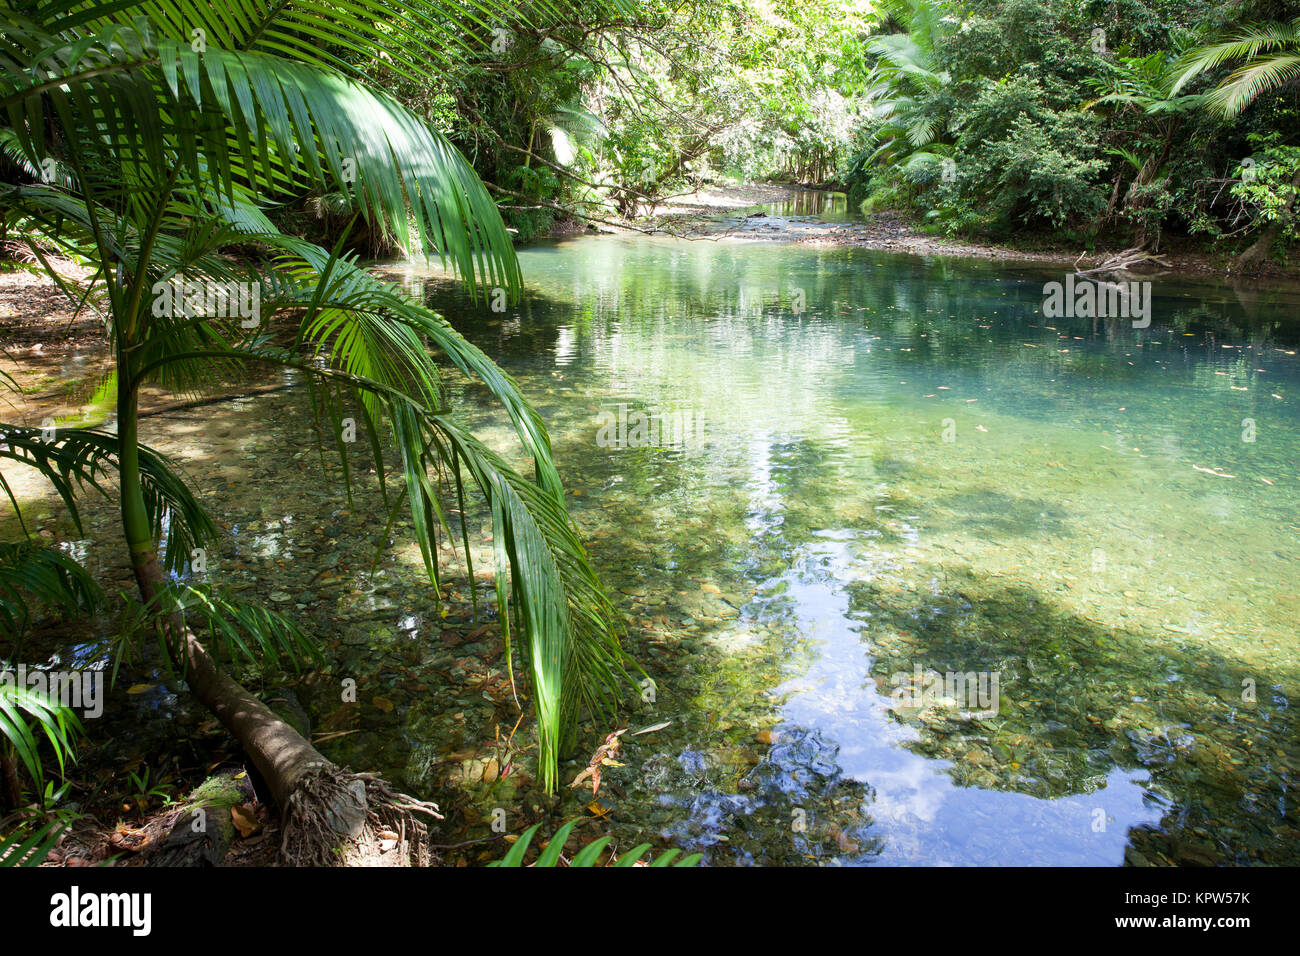 Daintree rainforest australia stock photos daintree for Diwan queensland